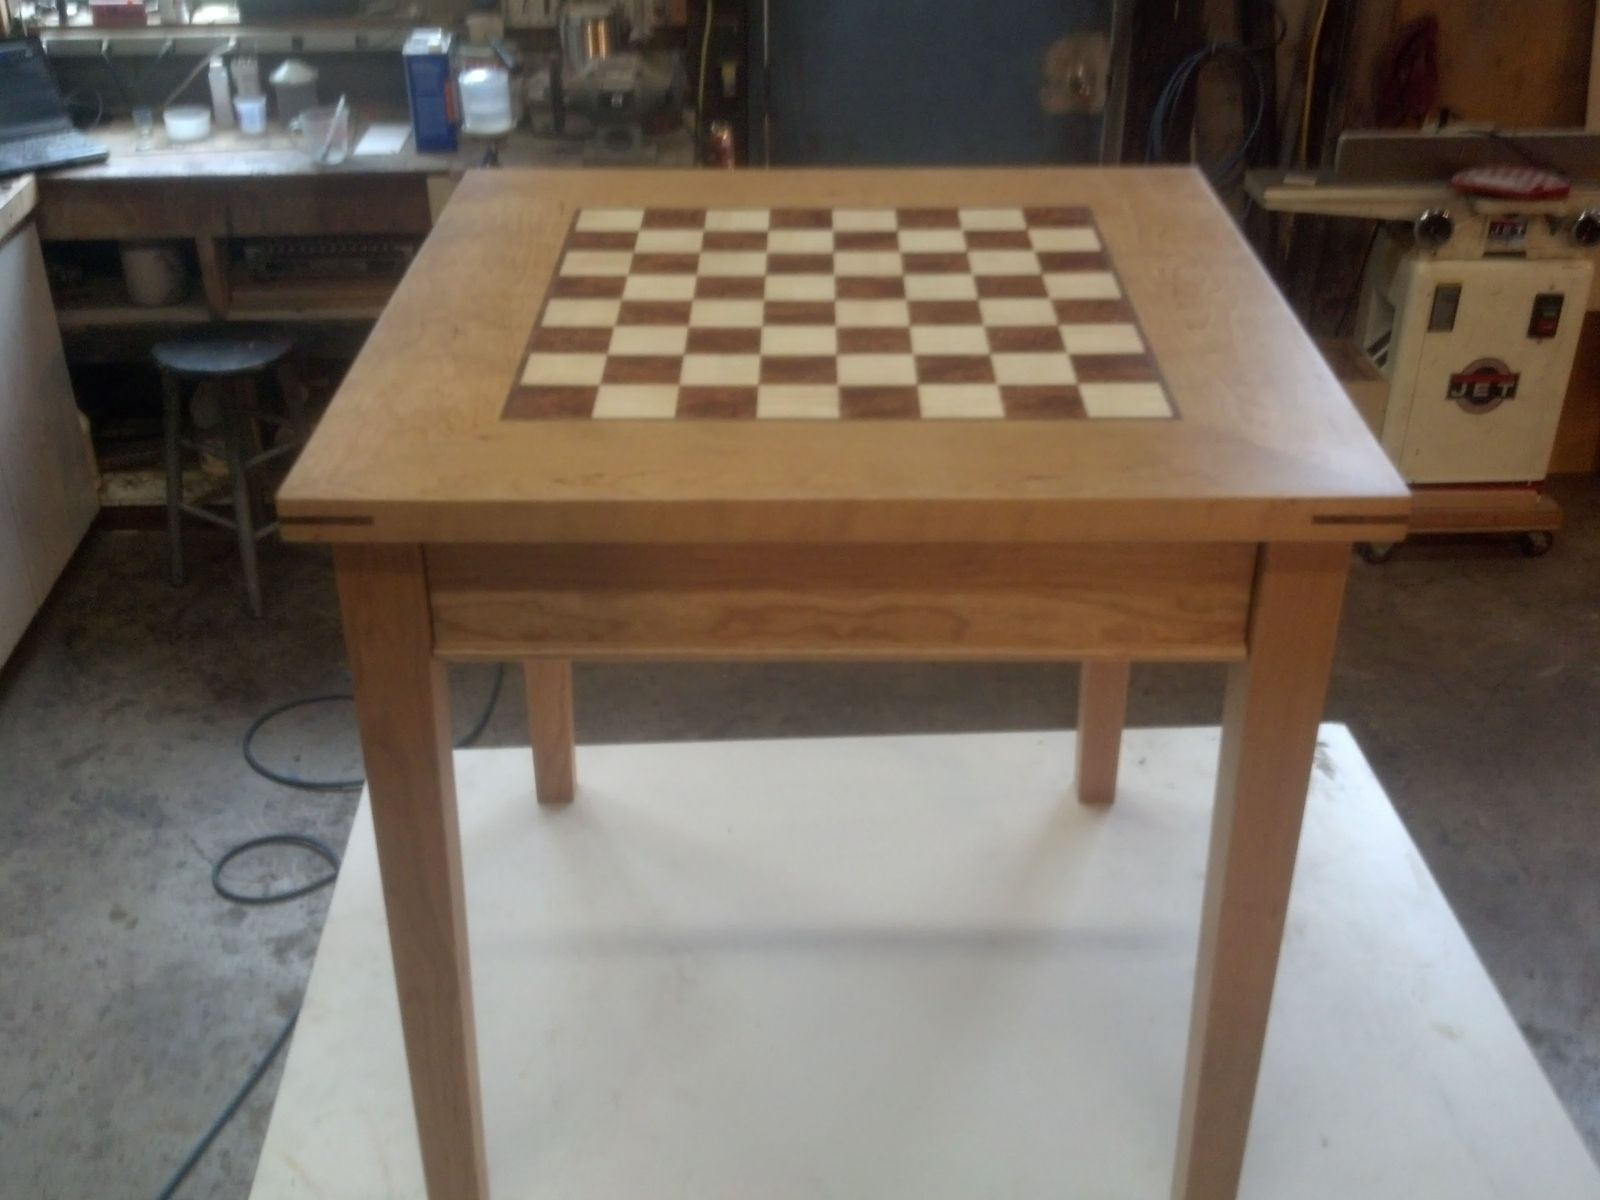 Hand Crafted Cherry Chess Table by Puddle Town Woodworking | CustomMade.com